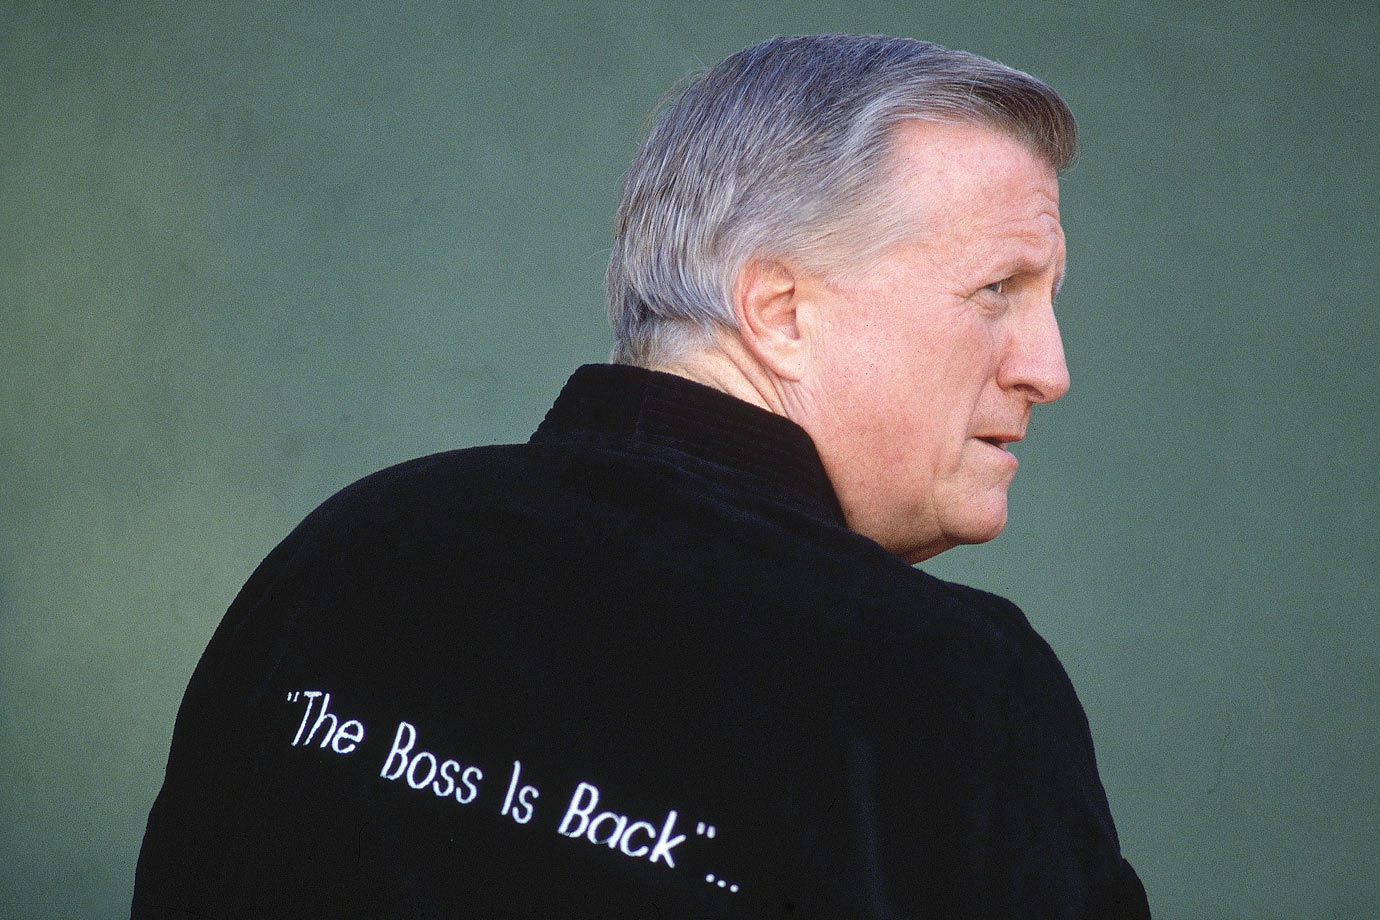 """George Steinbrenner poses in a robe that reads """"The Boss Is Back""""... on Feb. 15, 1993 at his home in Tampa, Fla."""